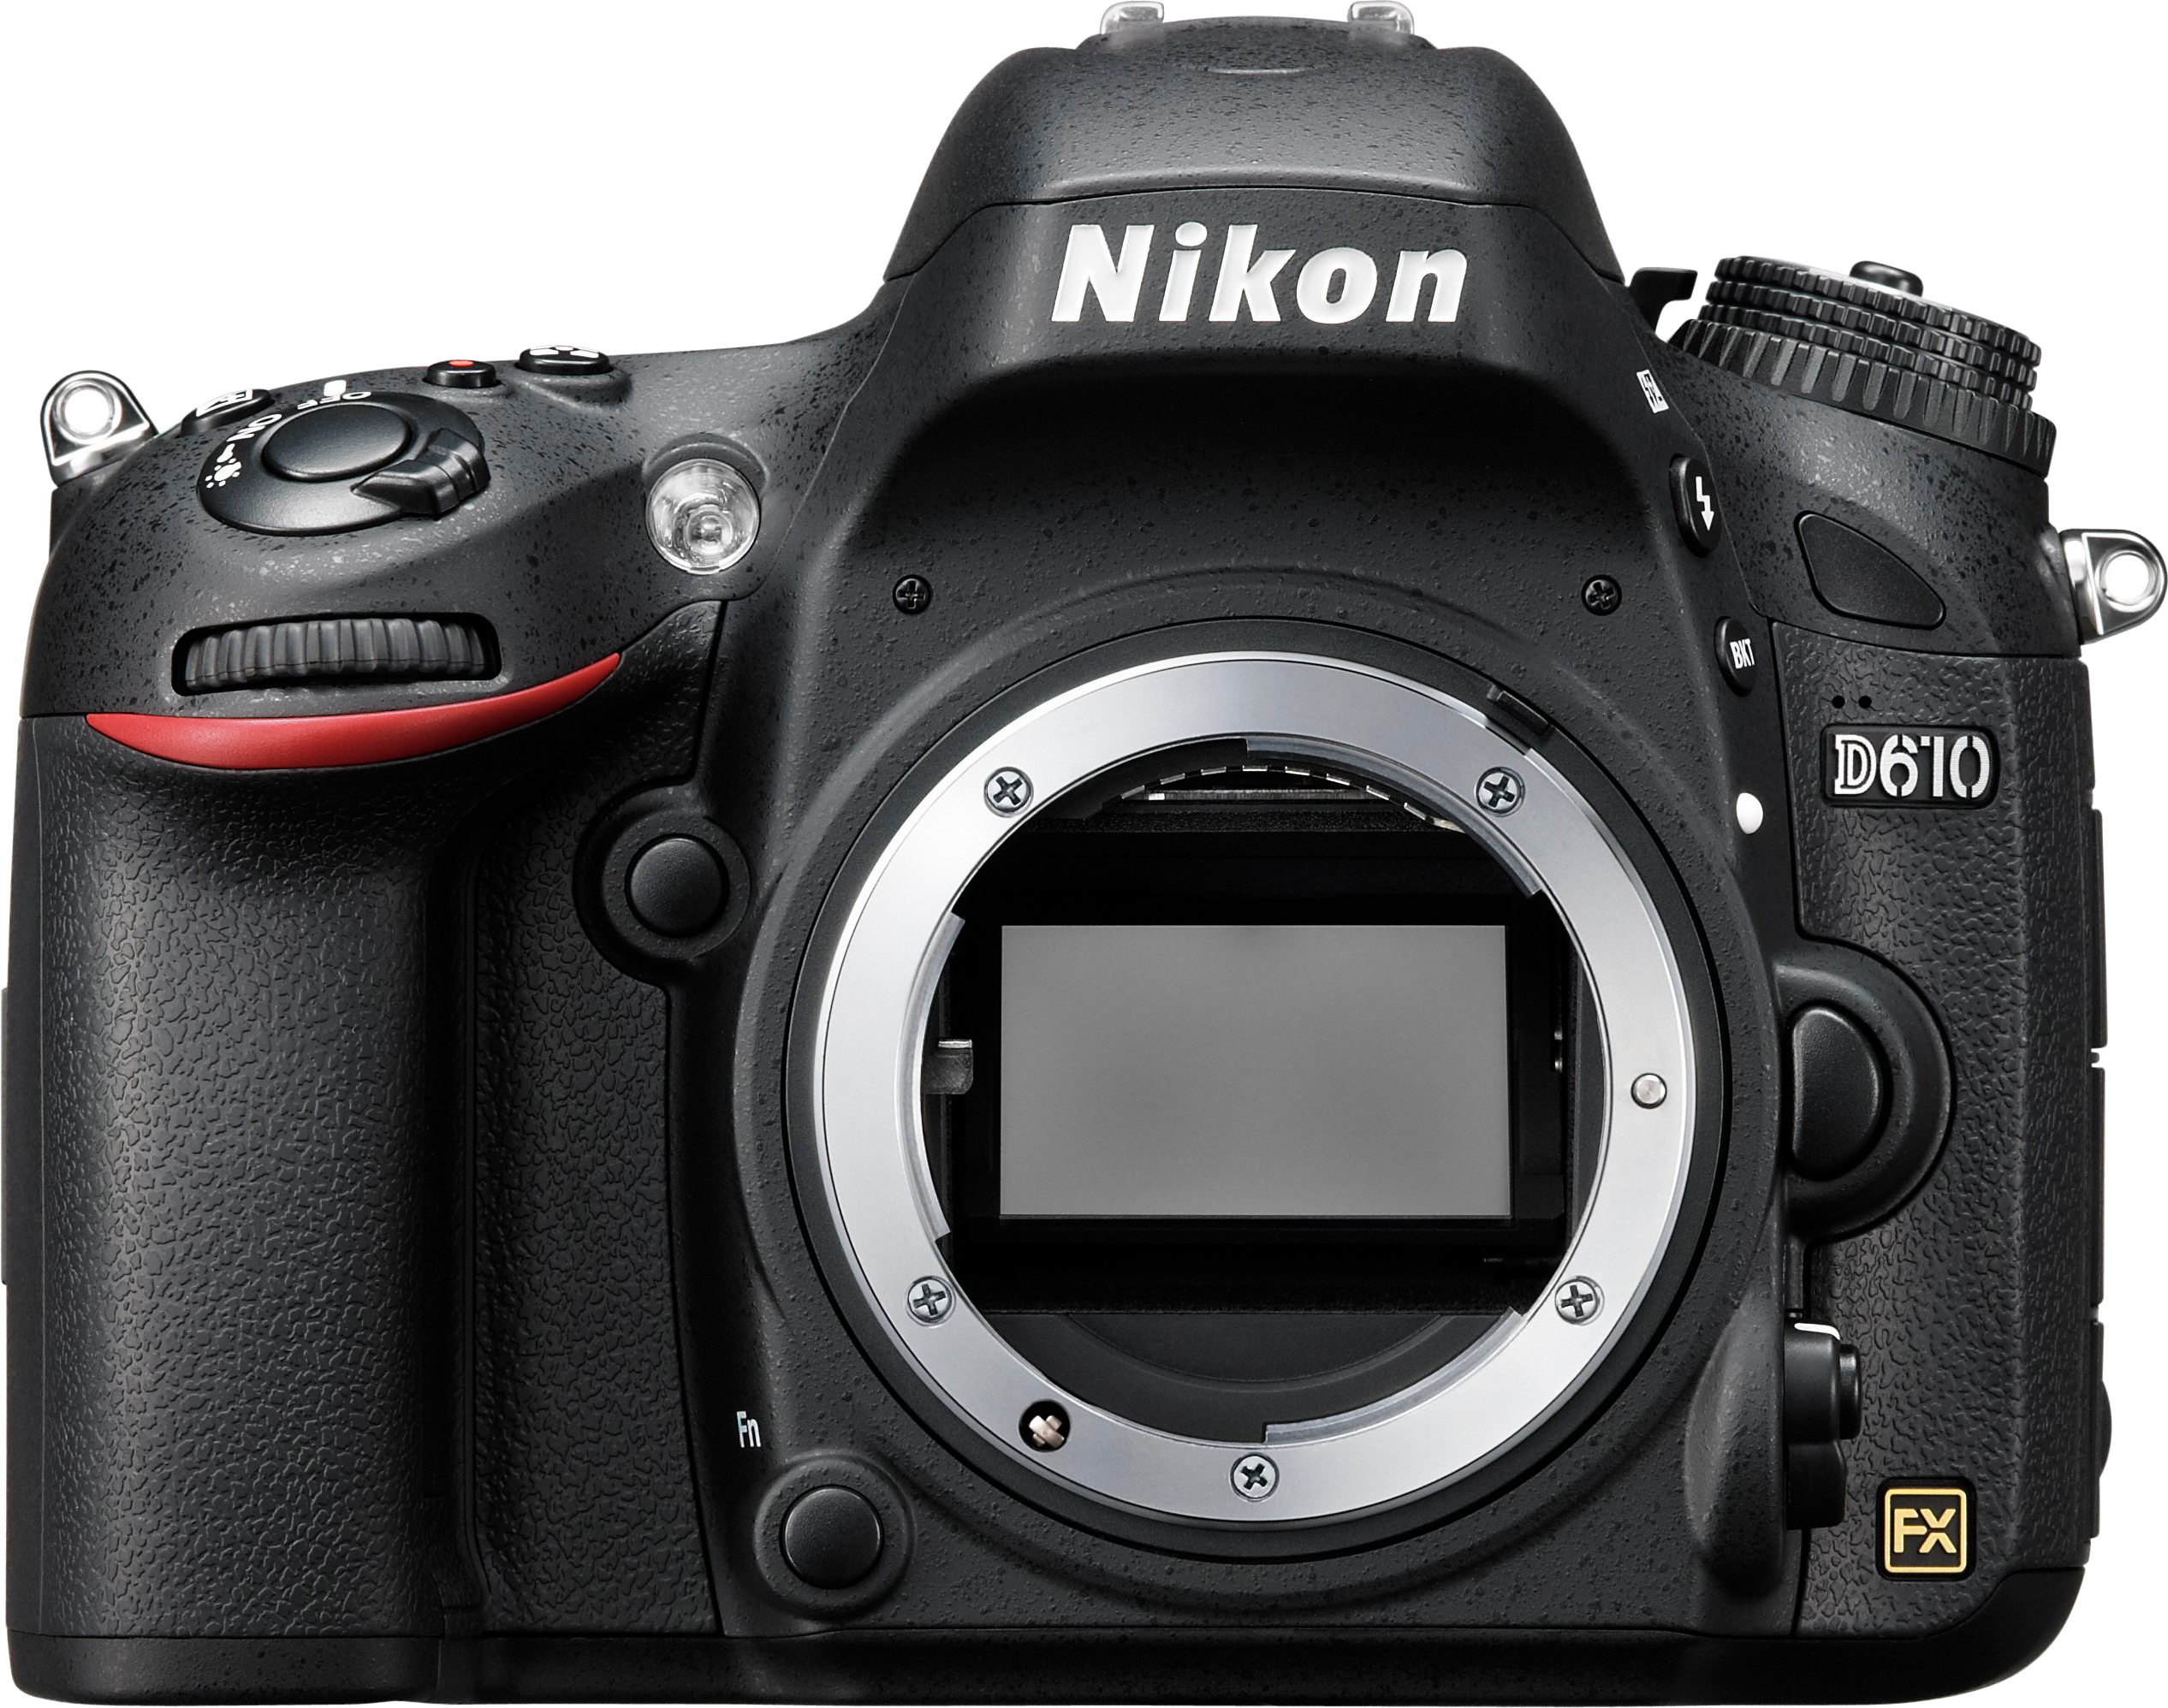 Entry level full frame 24 megapixel camera with 6fps shooting